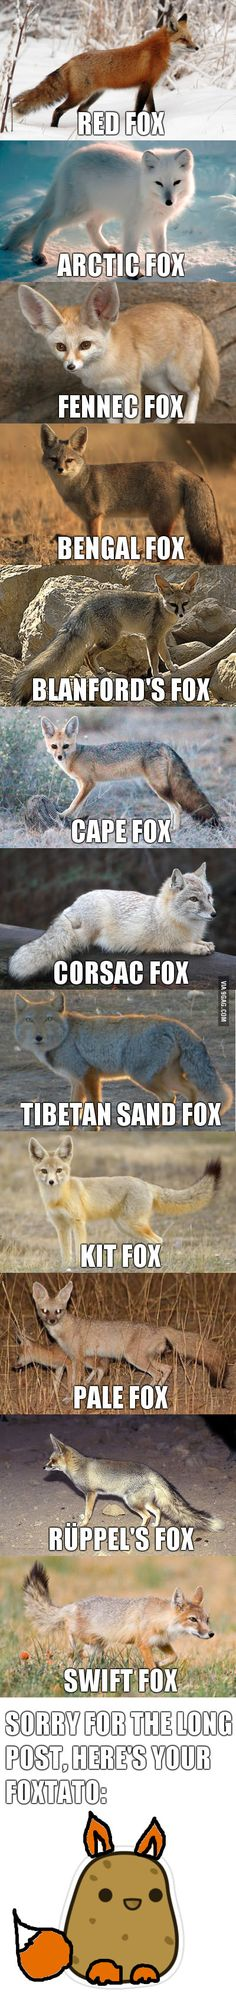 After all those posts about cates and doges it's time for one about foxes